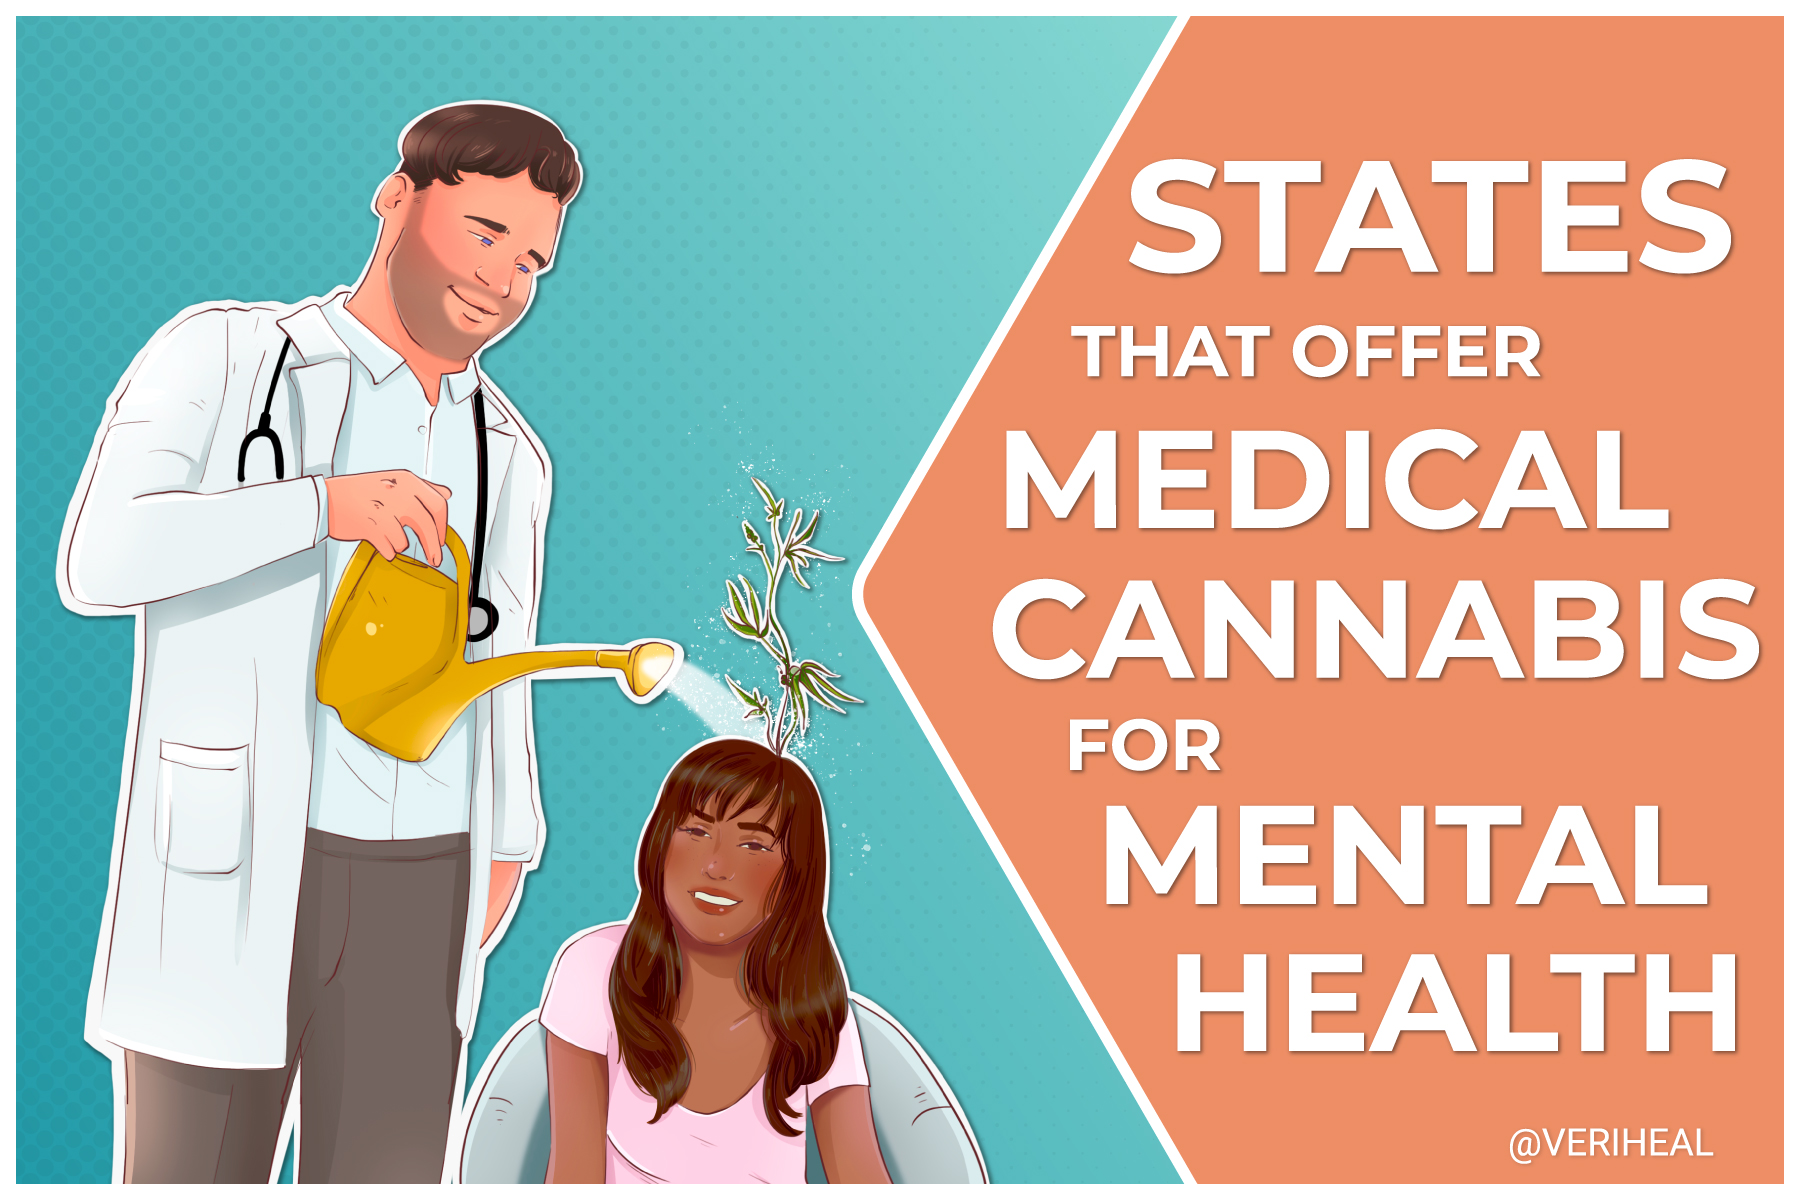 Which States Offer Medical Cannabis For Mental Health Conditions?